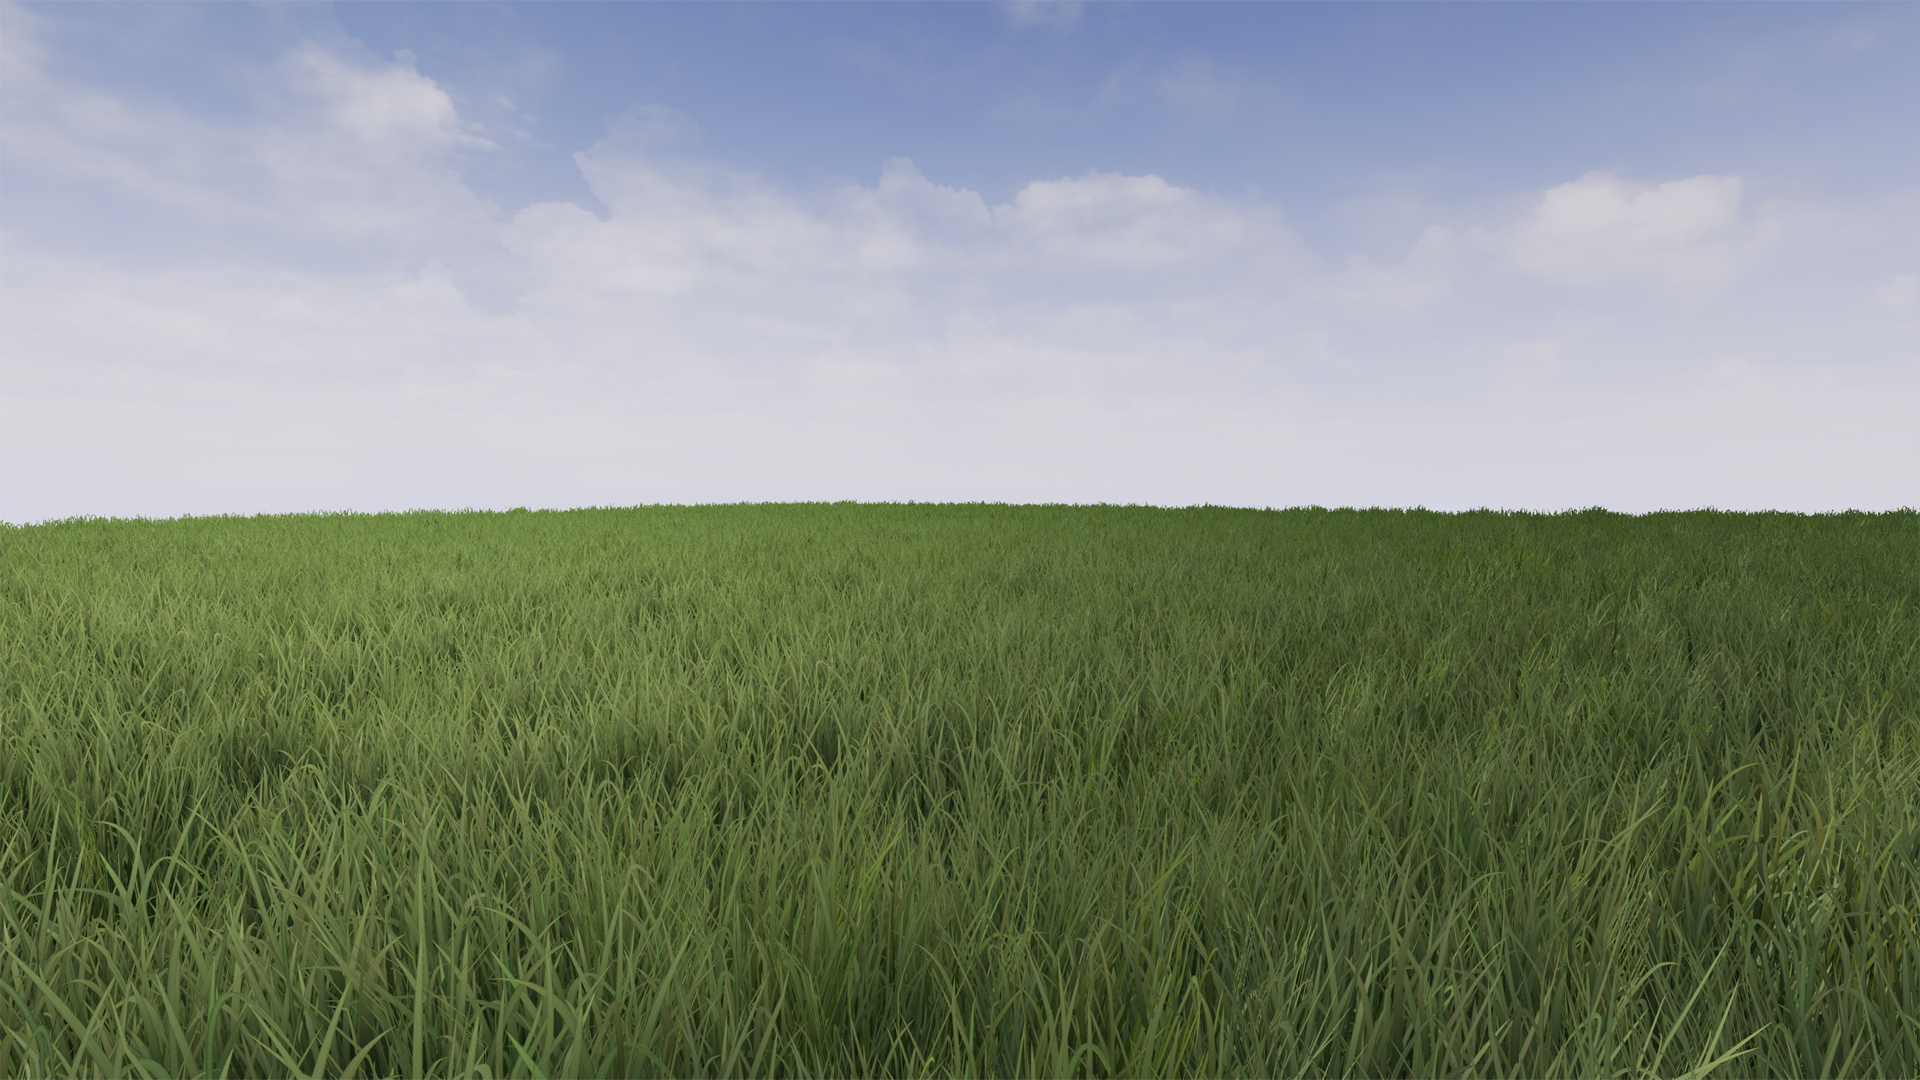 Realistic Grass 1 from James Yates